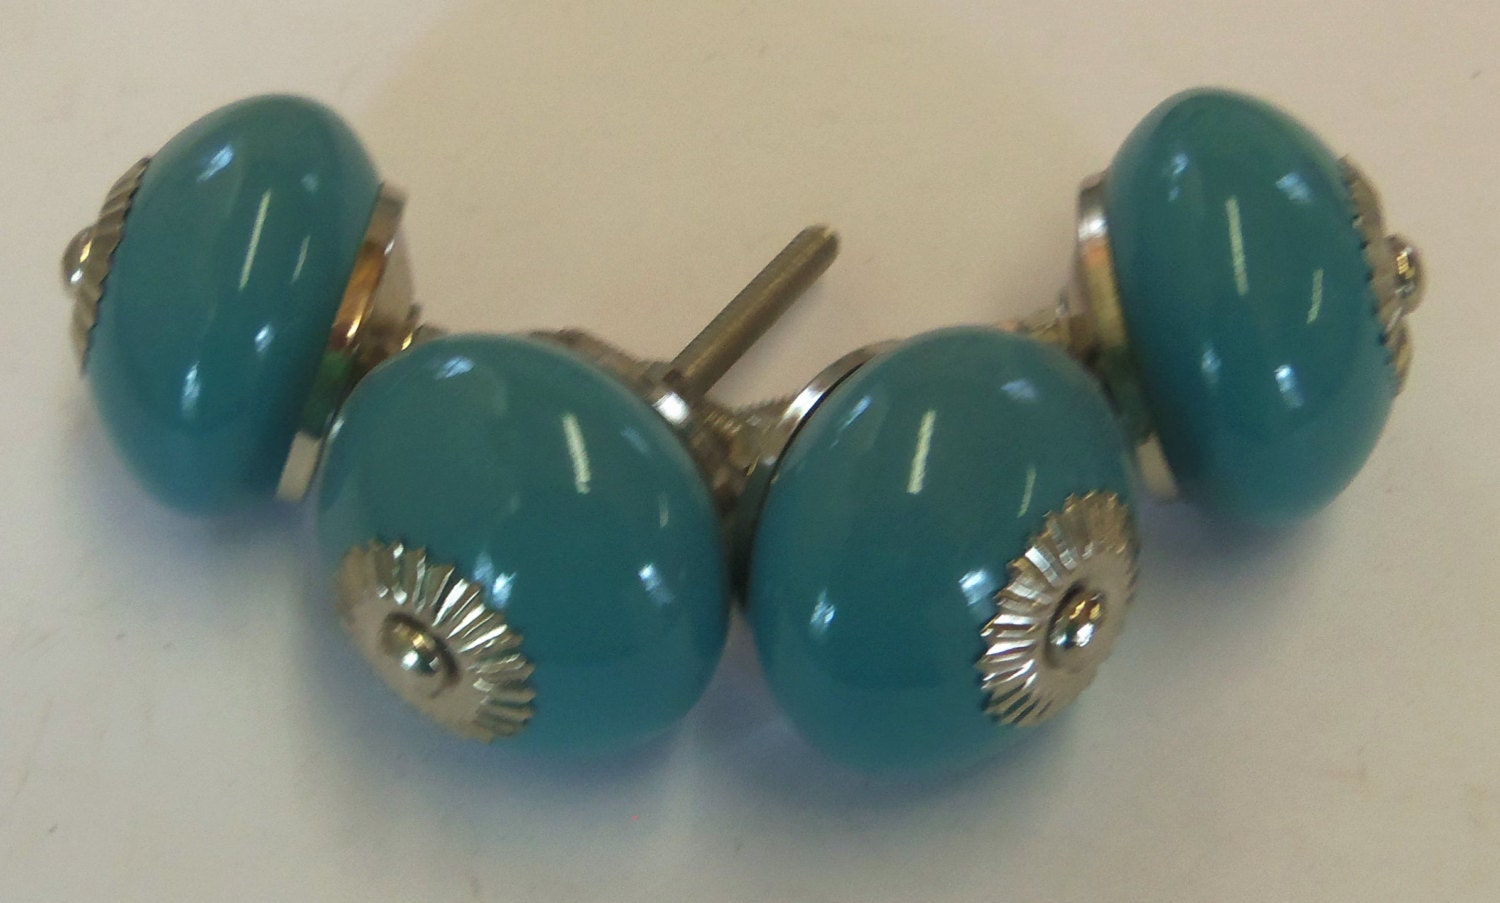 Free shipping 4 drawer pulls aqua turquoise ceramic knobs big for Turquoise door knobs